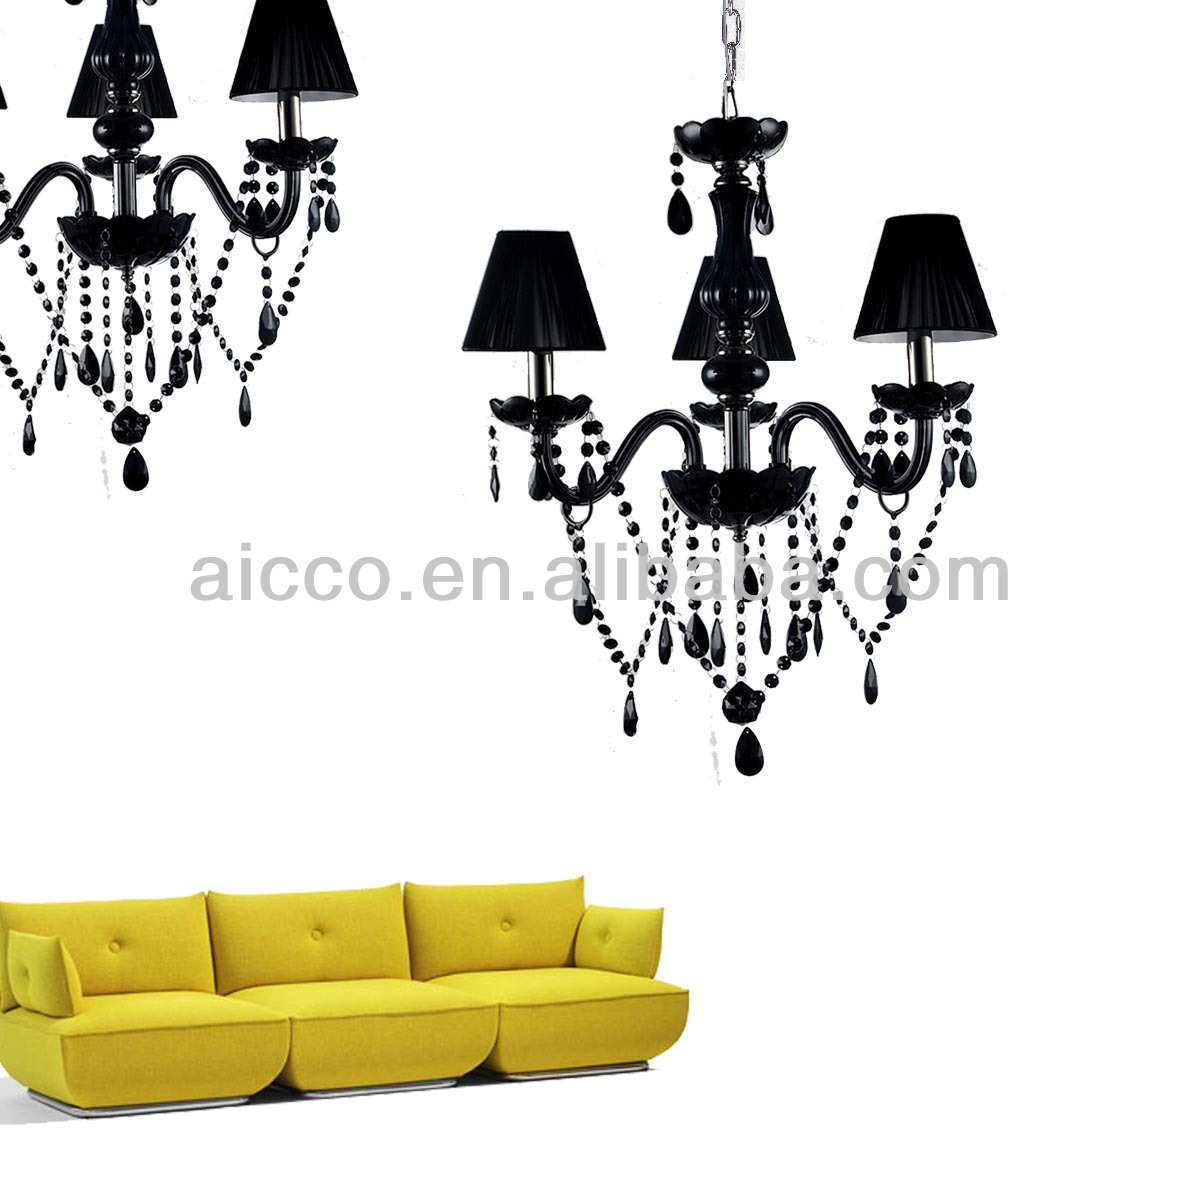 Hot Sell Black Crystal Black Glass Chandelier Lighting